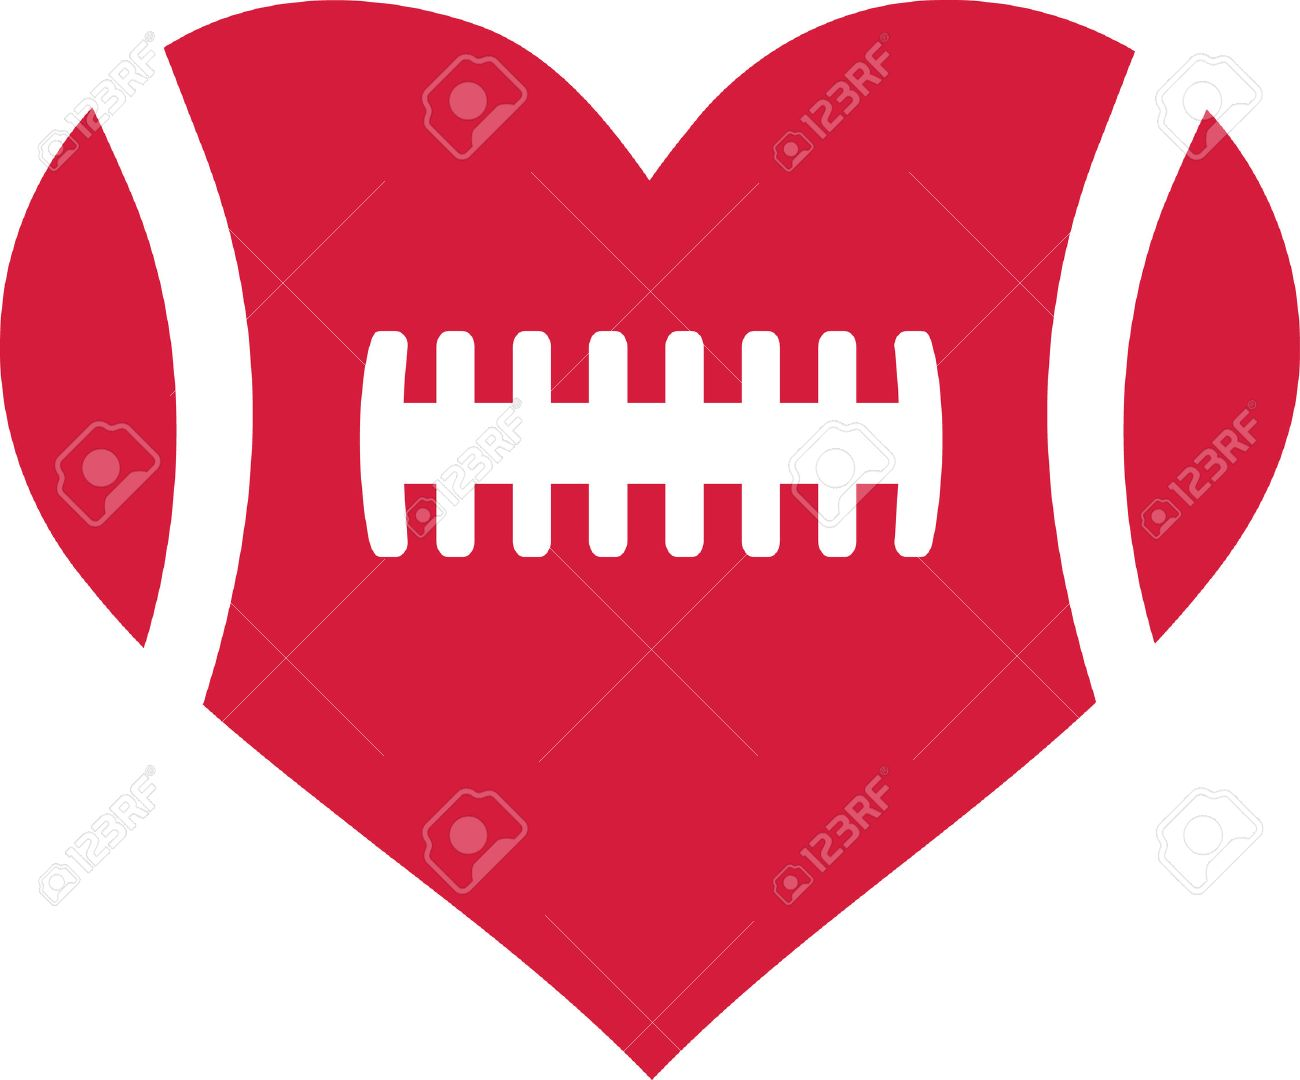 1300x1080 American Football Heart Royalty Free Cliparts, Vectors, And Stock